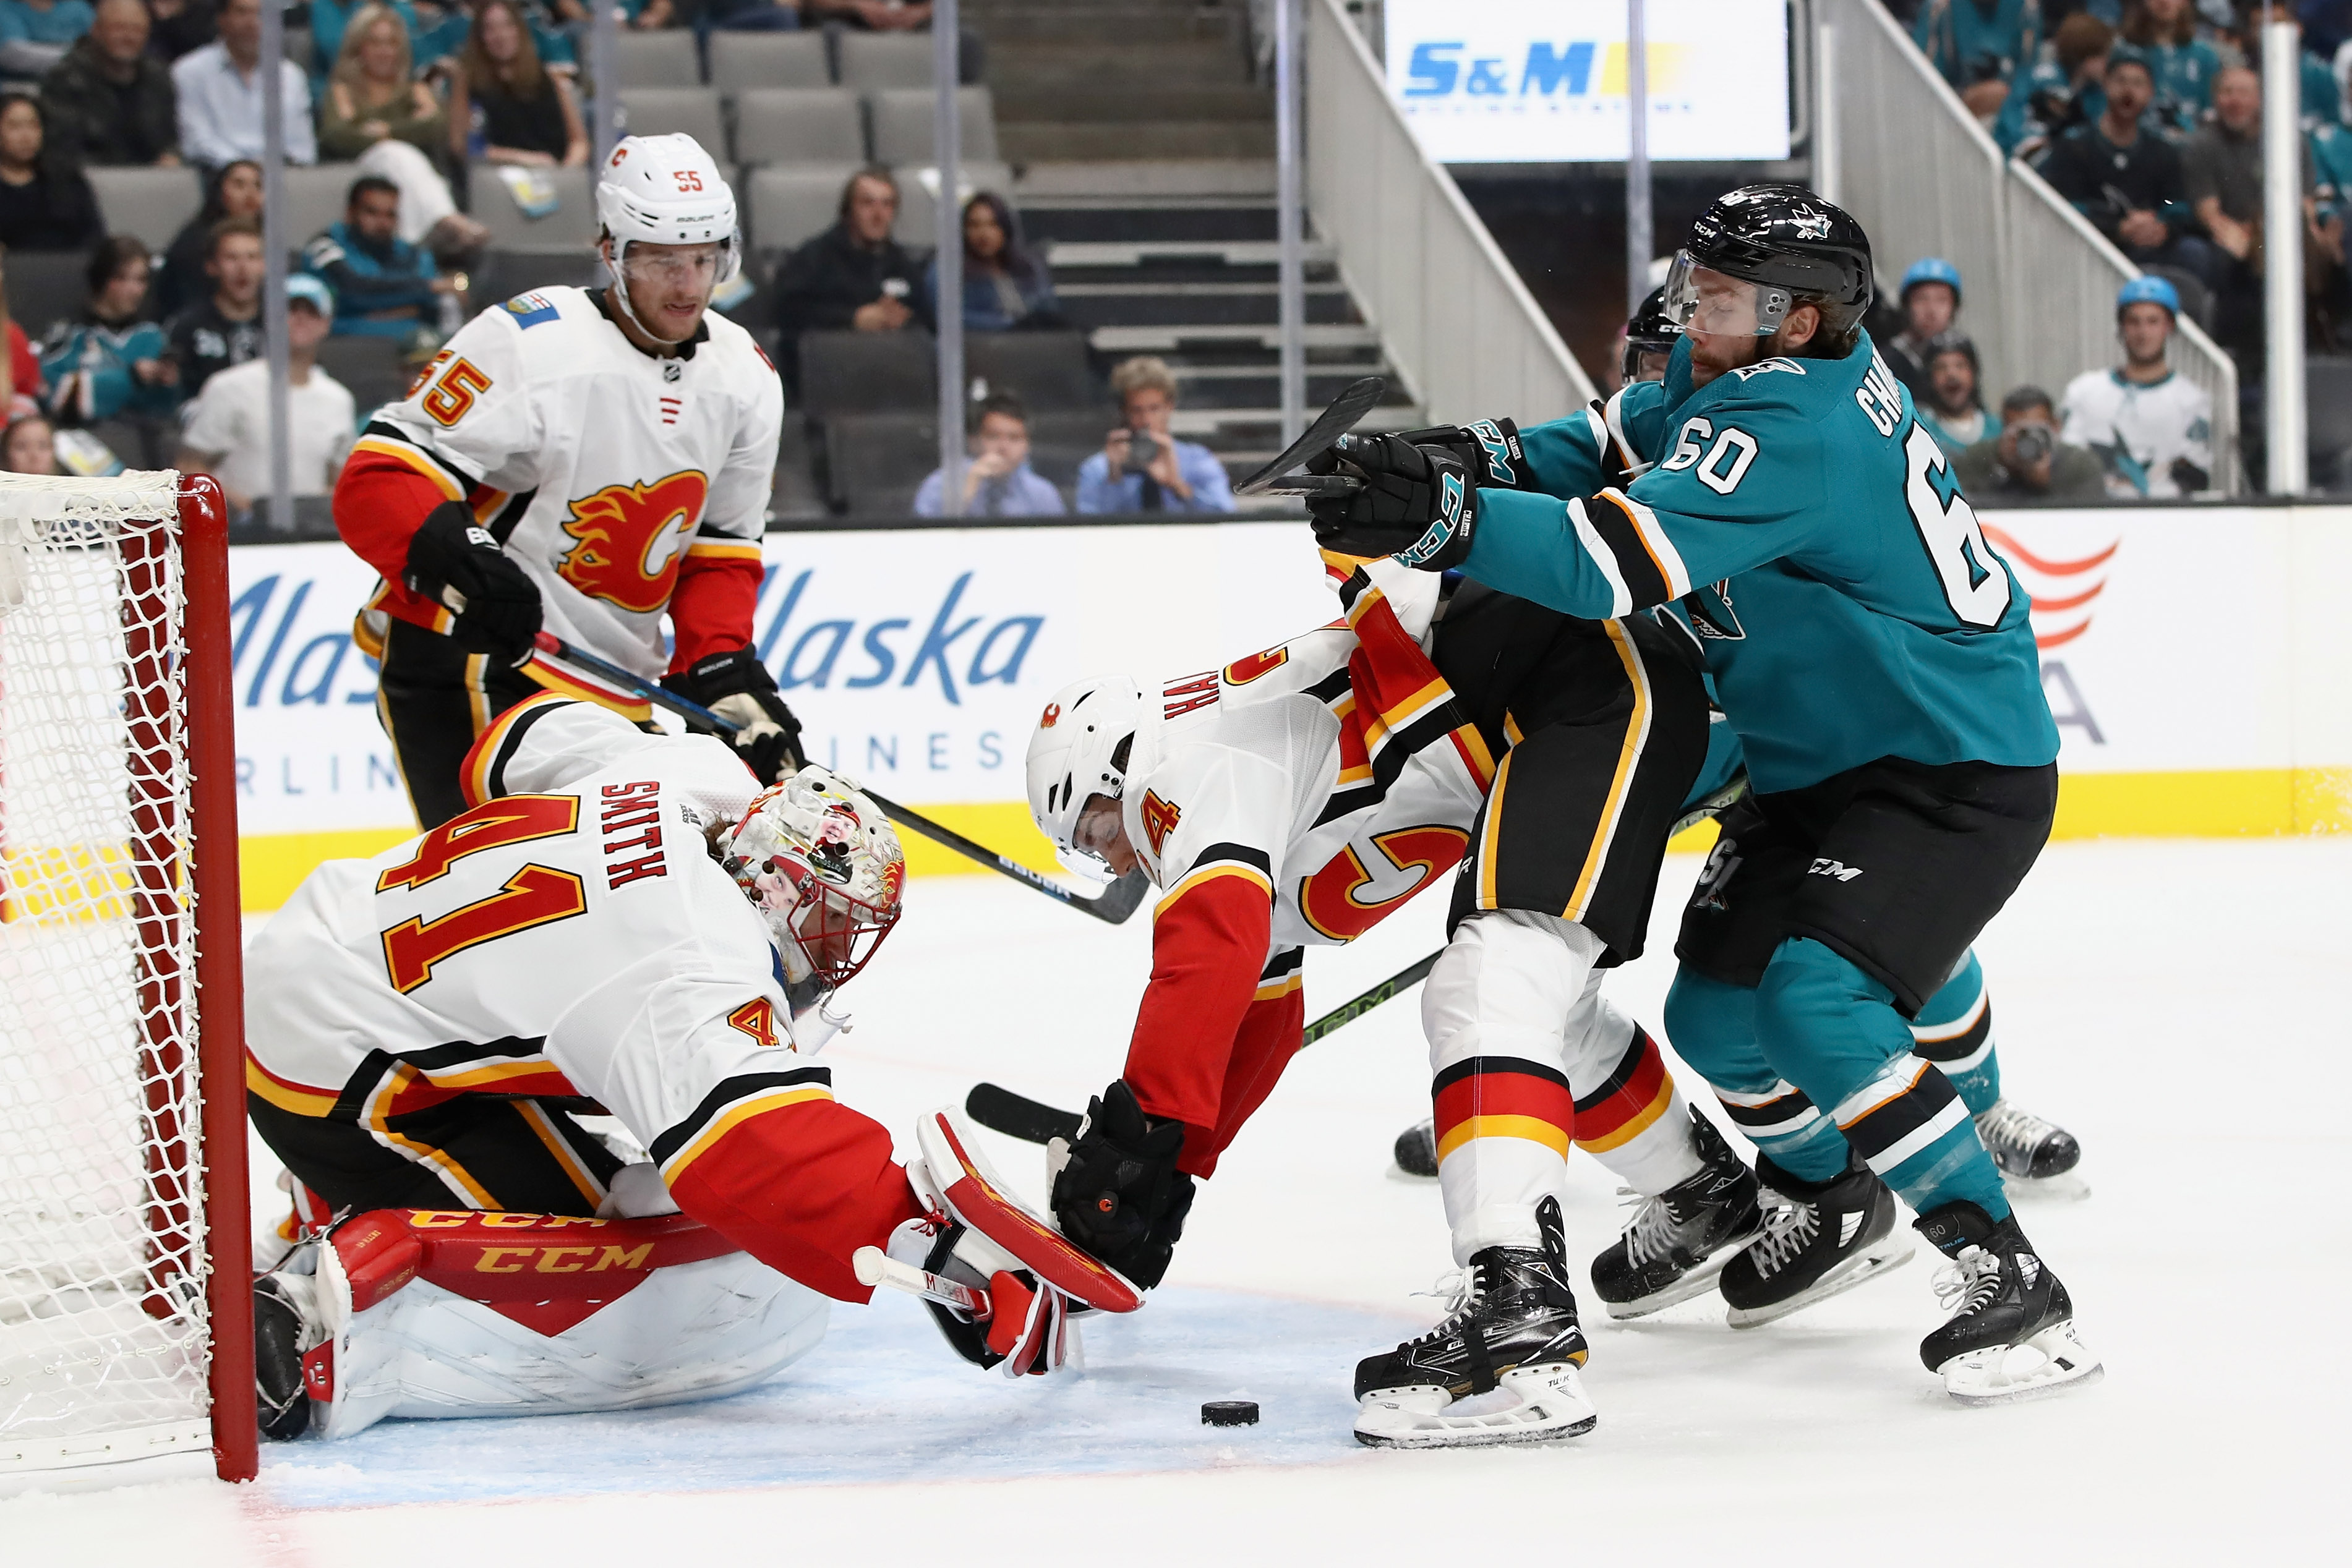 SAN JOSE, CA - SEPTEMBER 27: Mike Smith #41 and Travis Hamonic #24 of the Calgary Flames stop Rourke Chartier #60 of the San Jose Sharks from scoring during their preseason game at SAP Center on September 27, 2018 in San Jose, California.